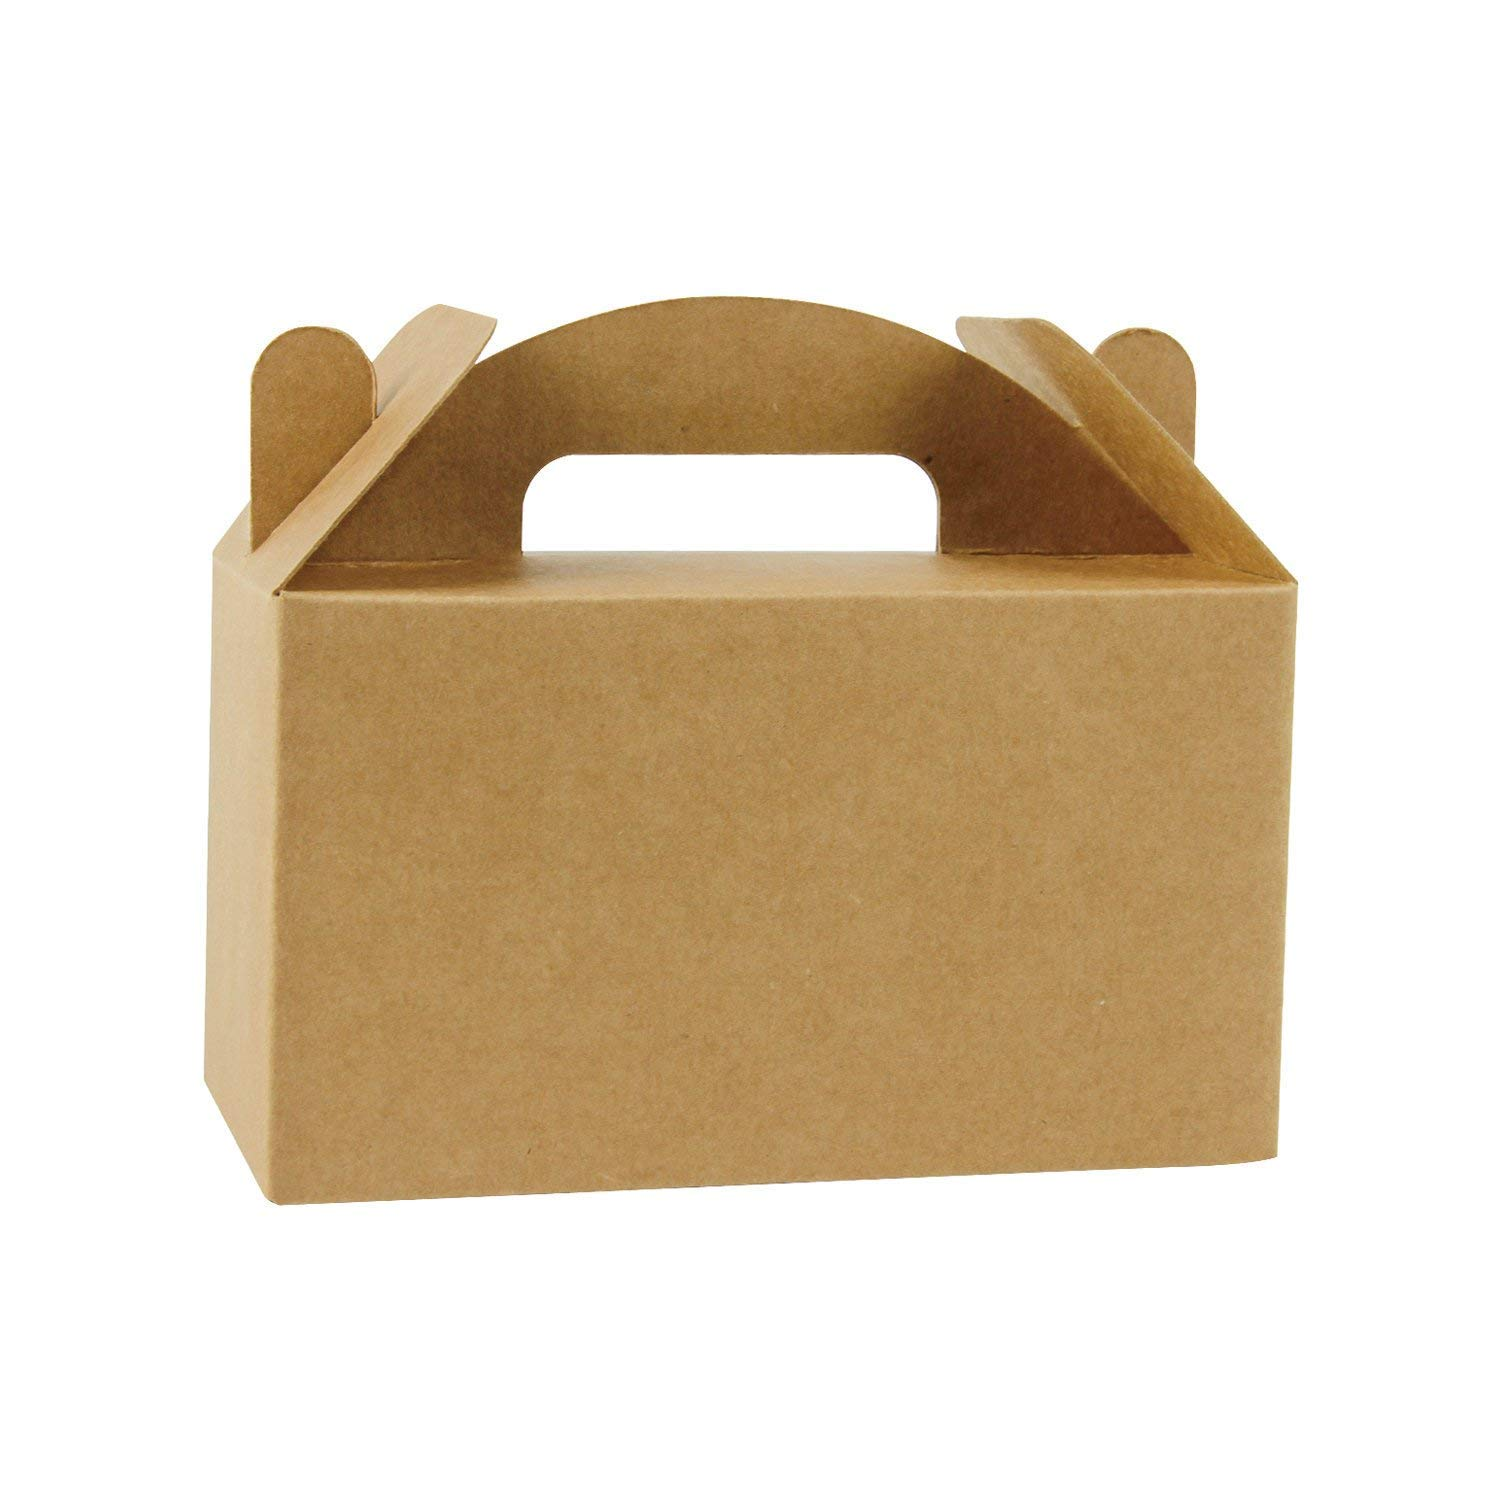 """LaRibbons 50 Pack Brown Color Treat Boxes Birthday Party Favors Shower Favor Box, 6.25"""" x 3.5"""" x 3.5"""""""